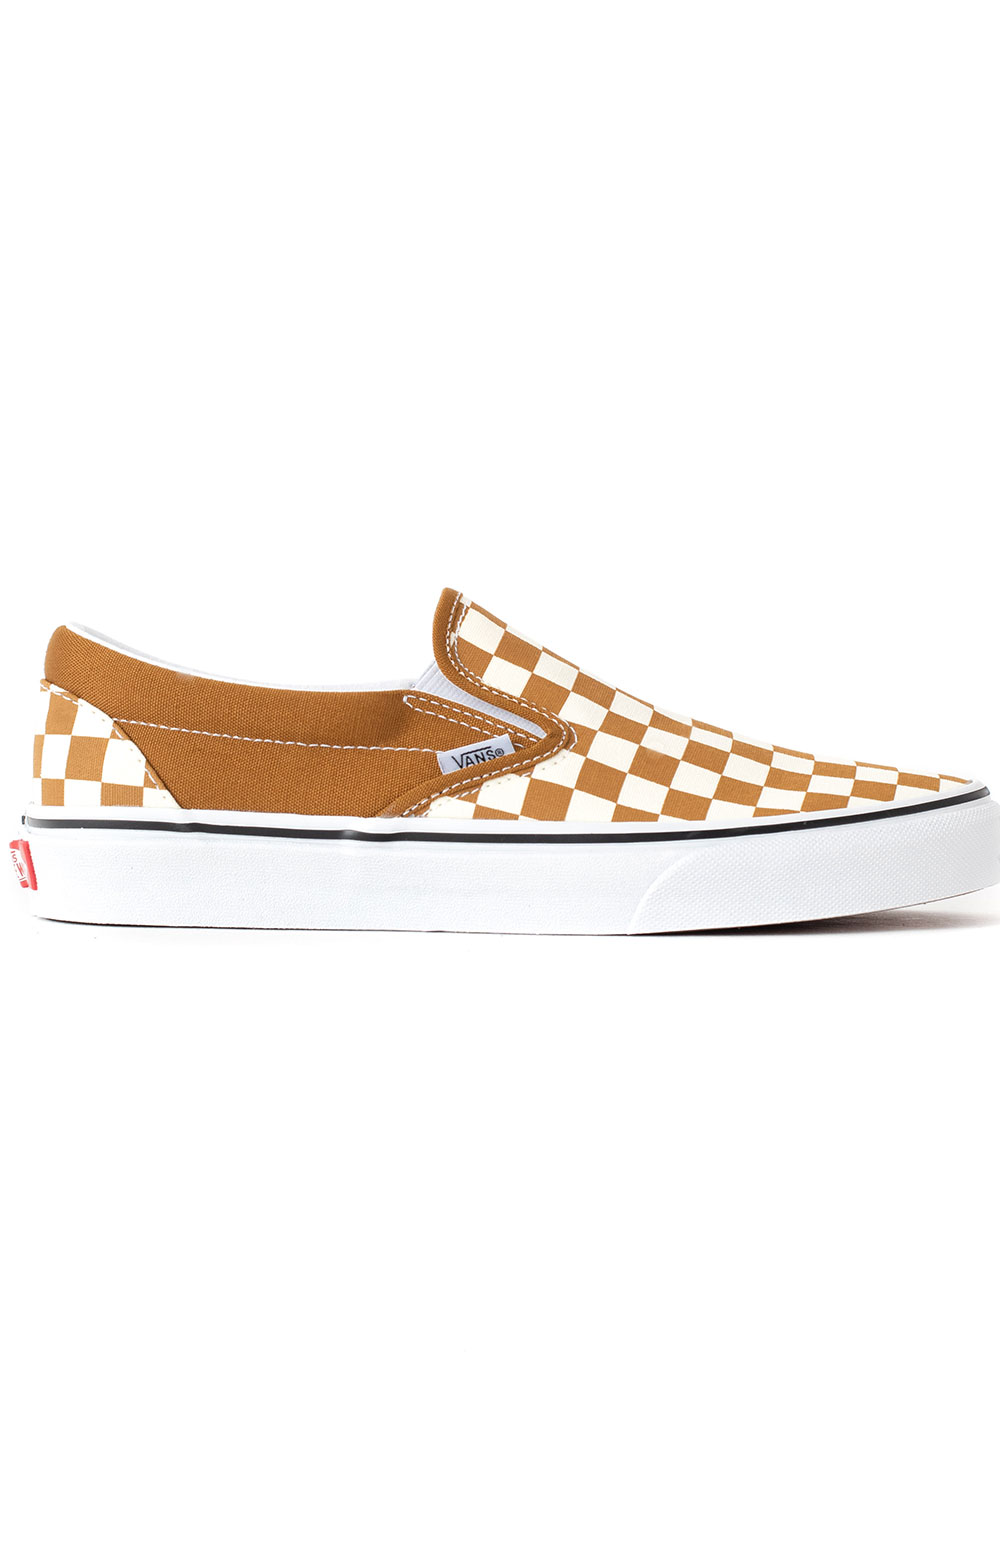 (3TB9HN) Checkerboard Classic Slip-On Shoes - Golden Brown